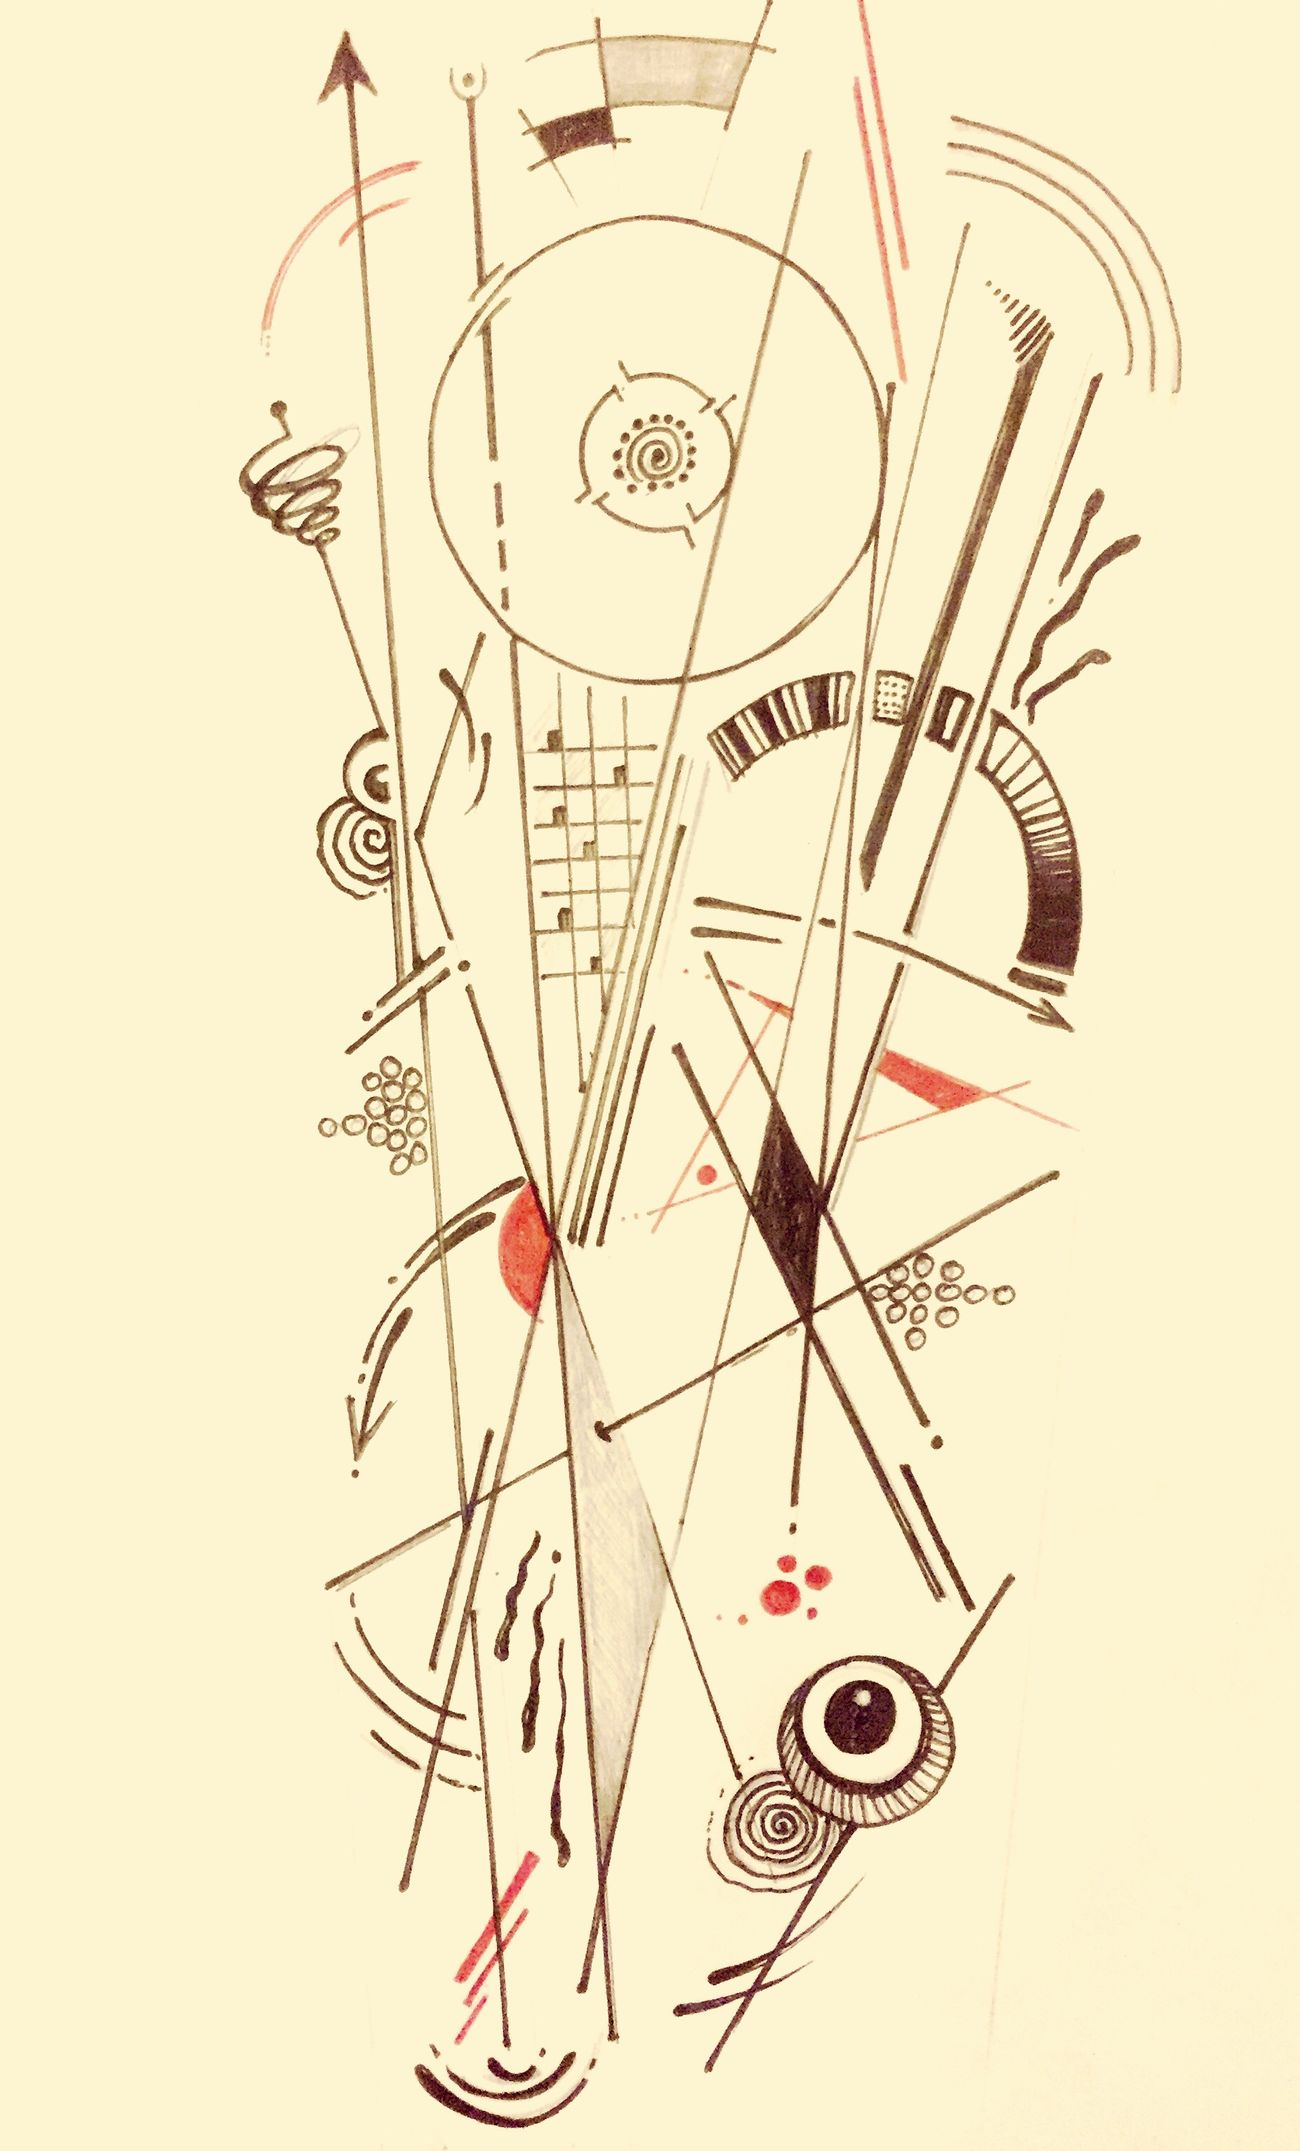 Tieumdekotattoo Tieumdeko Tattooartist  Tattoo ❤ Art, Drawing, Creativity Tattoos Tatto Amazing Design Tattoo Ink Oldschool Classic Drawing Draw Dessin Kandinsky